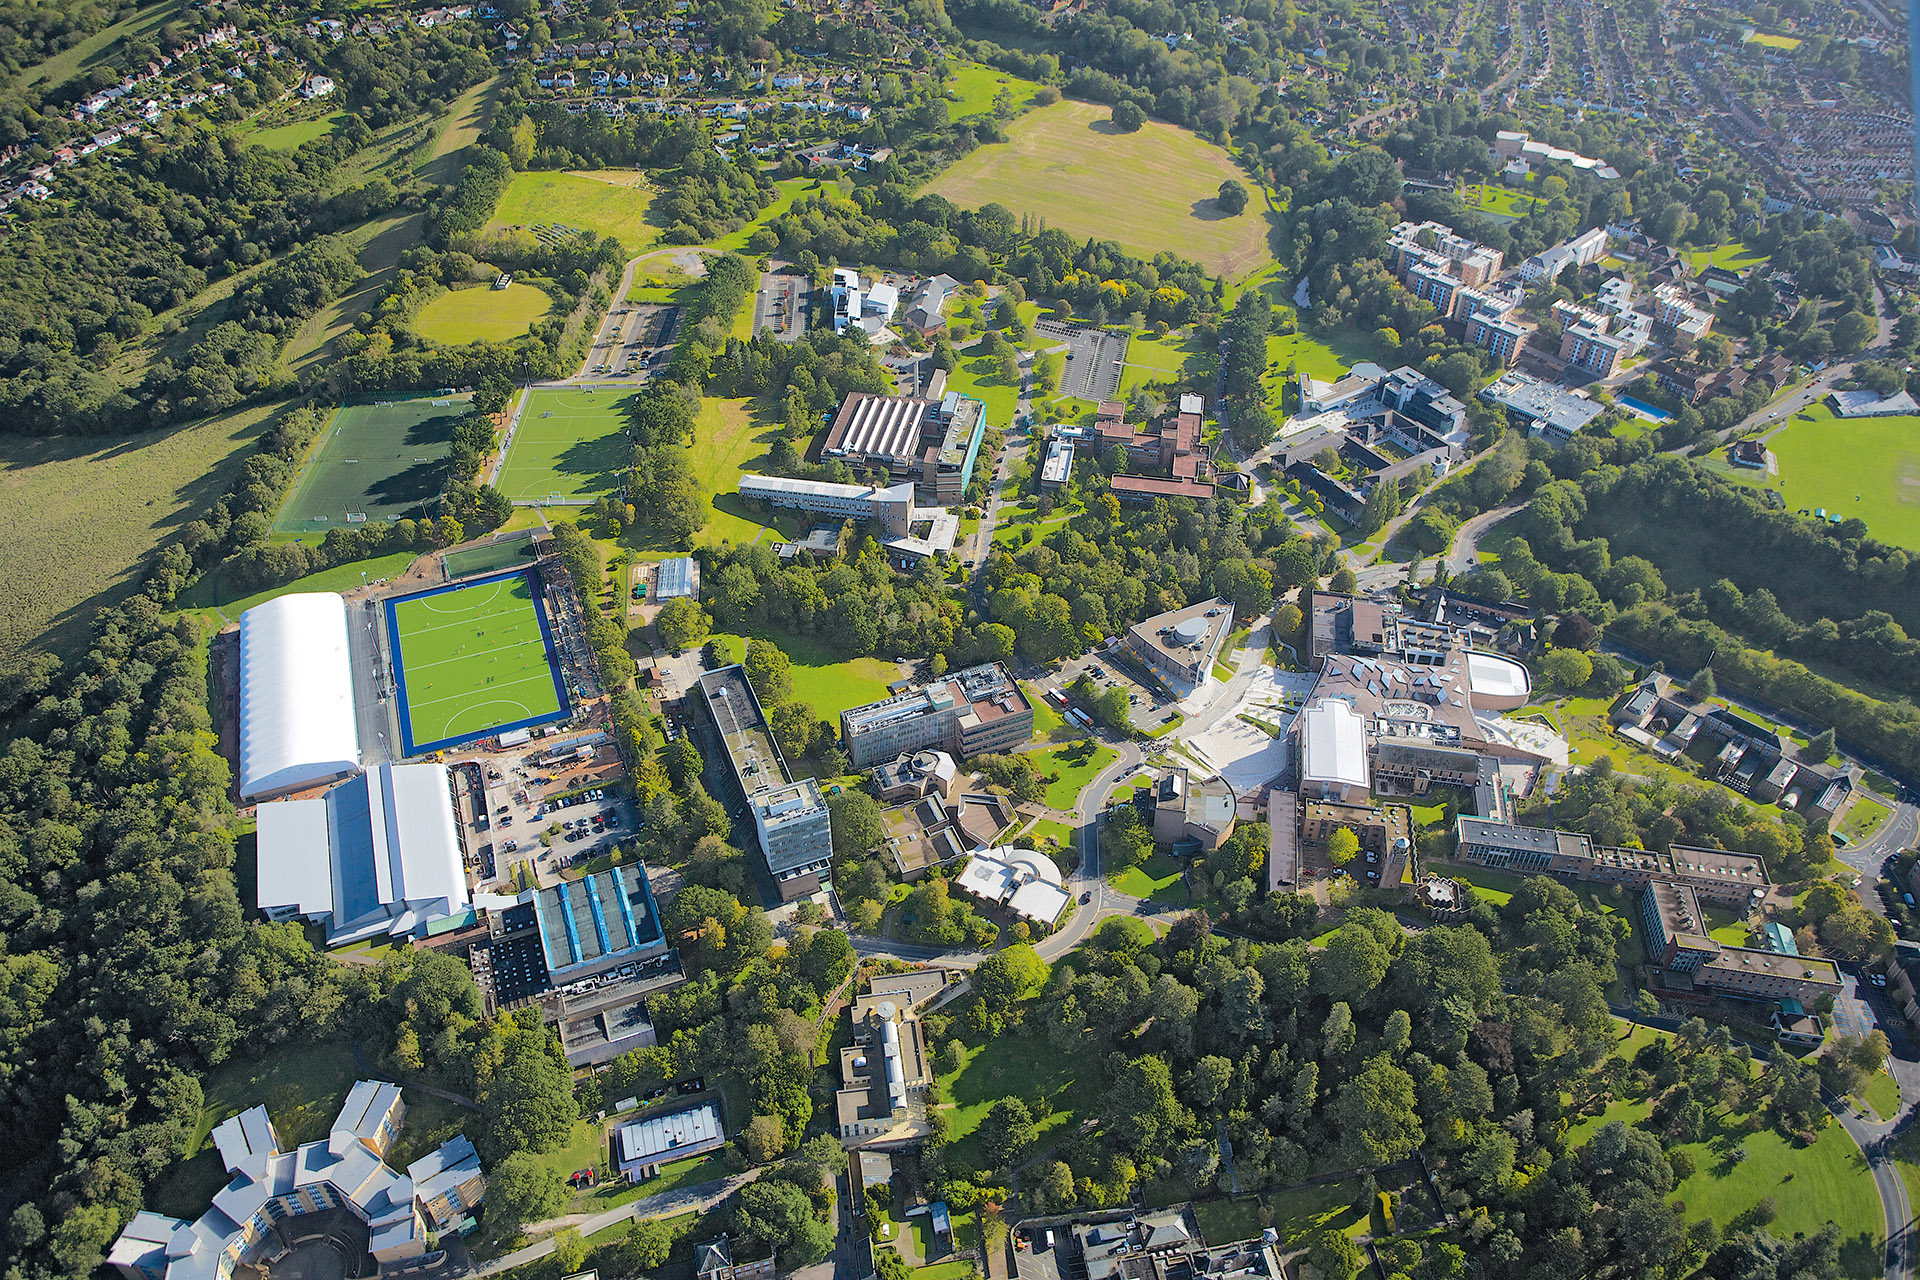 Aerial view of the University of Exeter campus